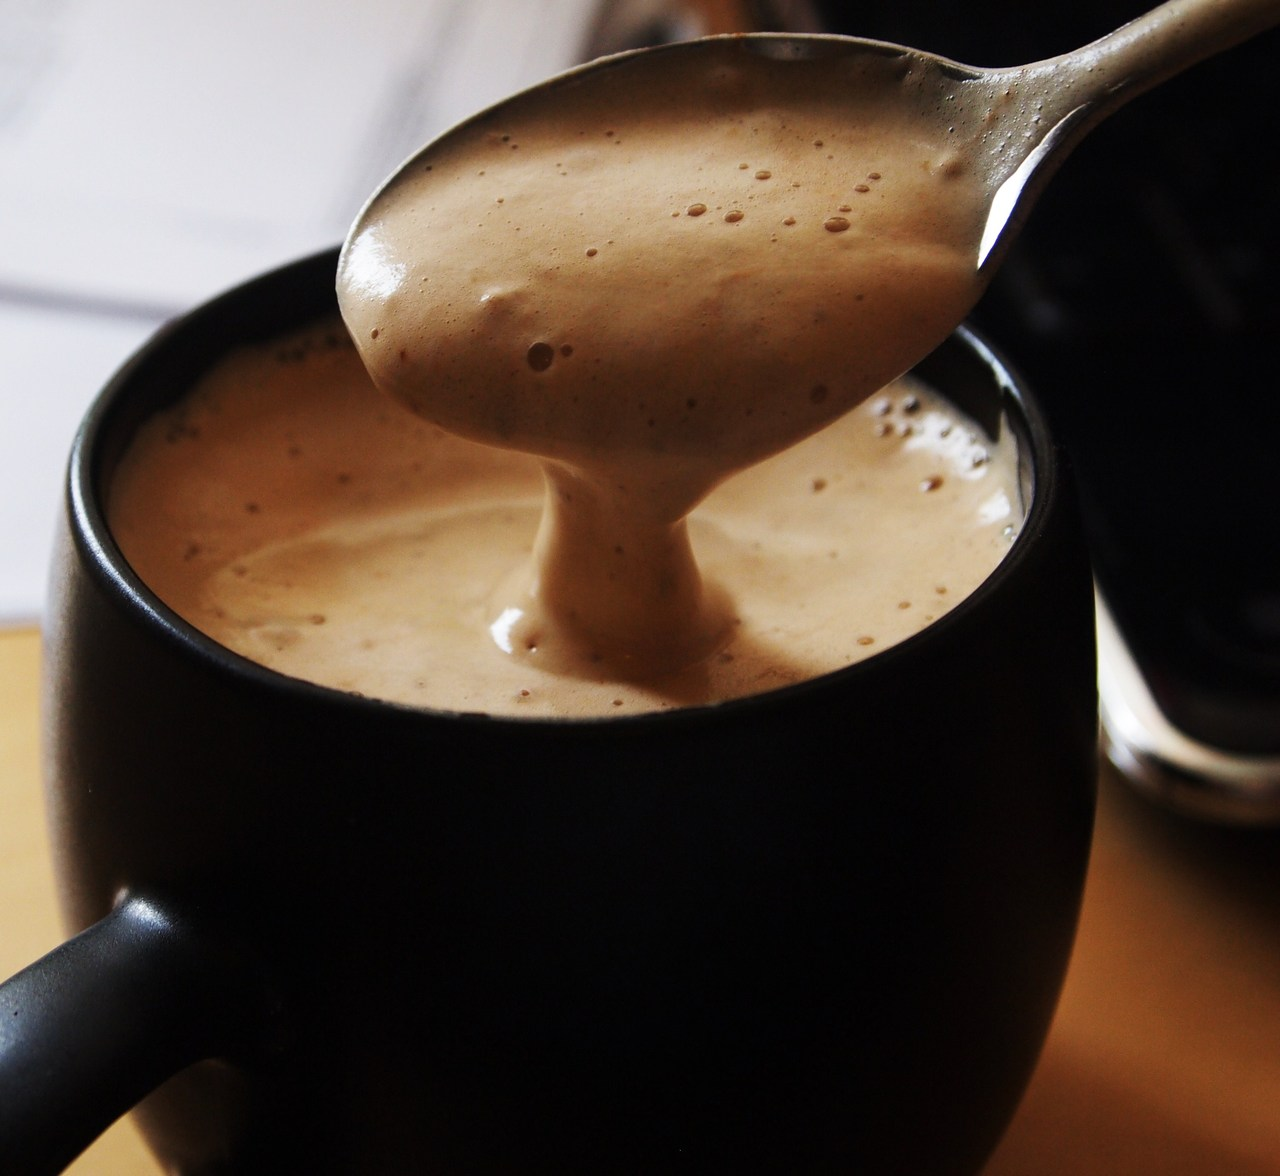 Hot Chocolate images Hot Chocolate HD wallpaper and background photos ...